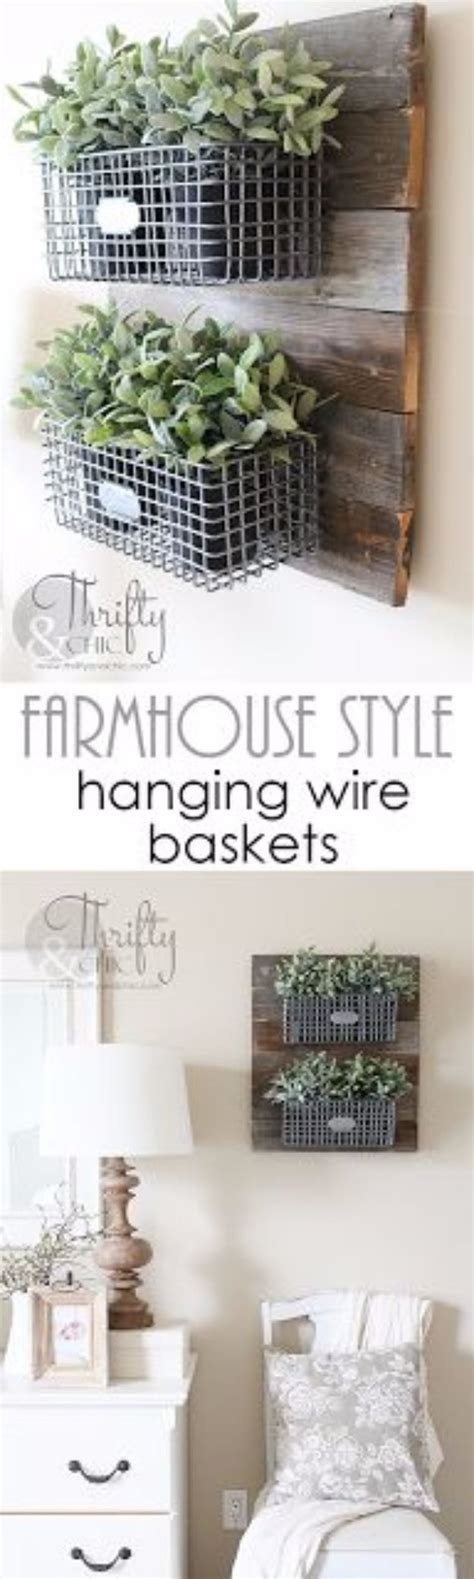 Simple Ideas For Hanging Wire Basket Best 25 Hanging Wire Basket Ideas On Pinterest Wire Basket On Wall Industrial Farmhouse